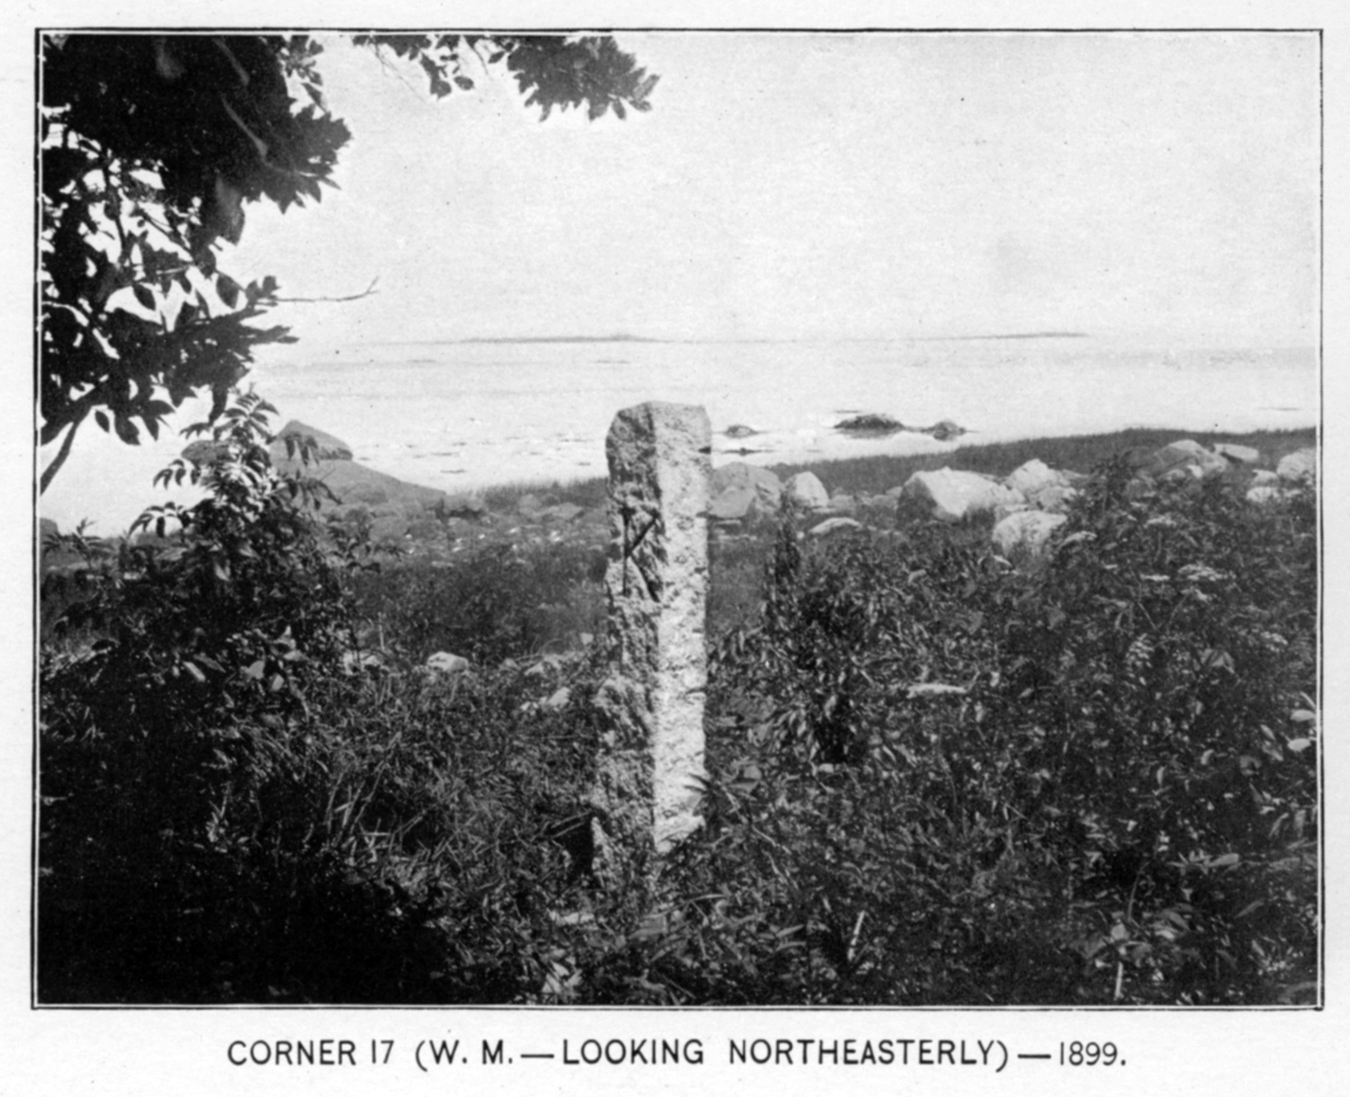 The witness stone at corner 17, near Kingston Bay, 1899